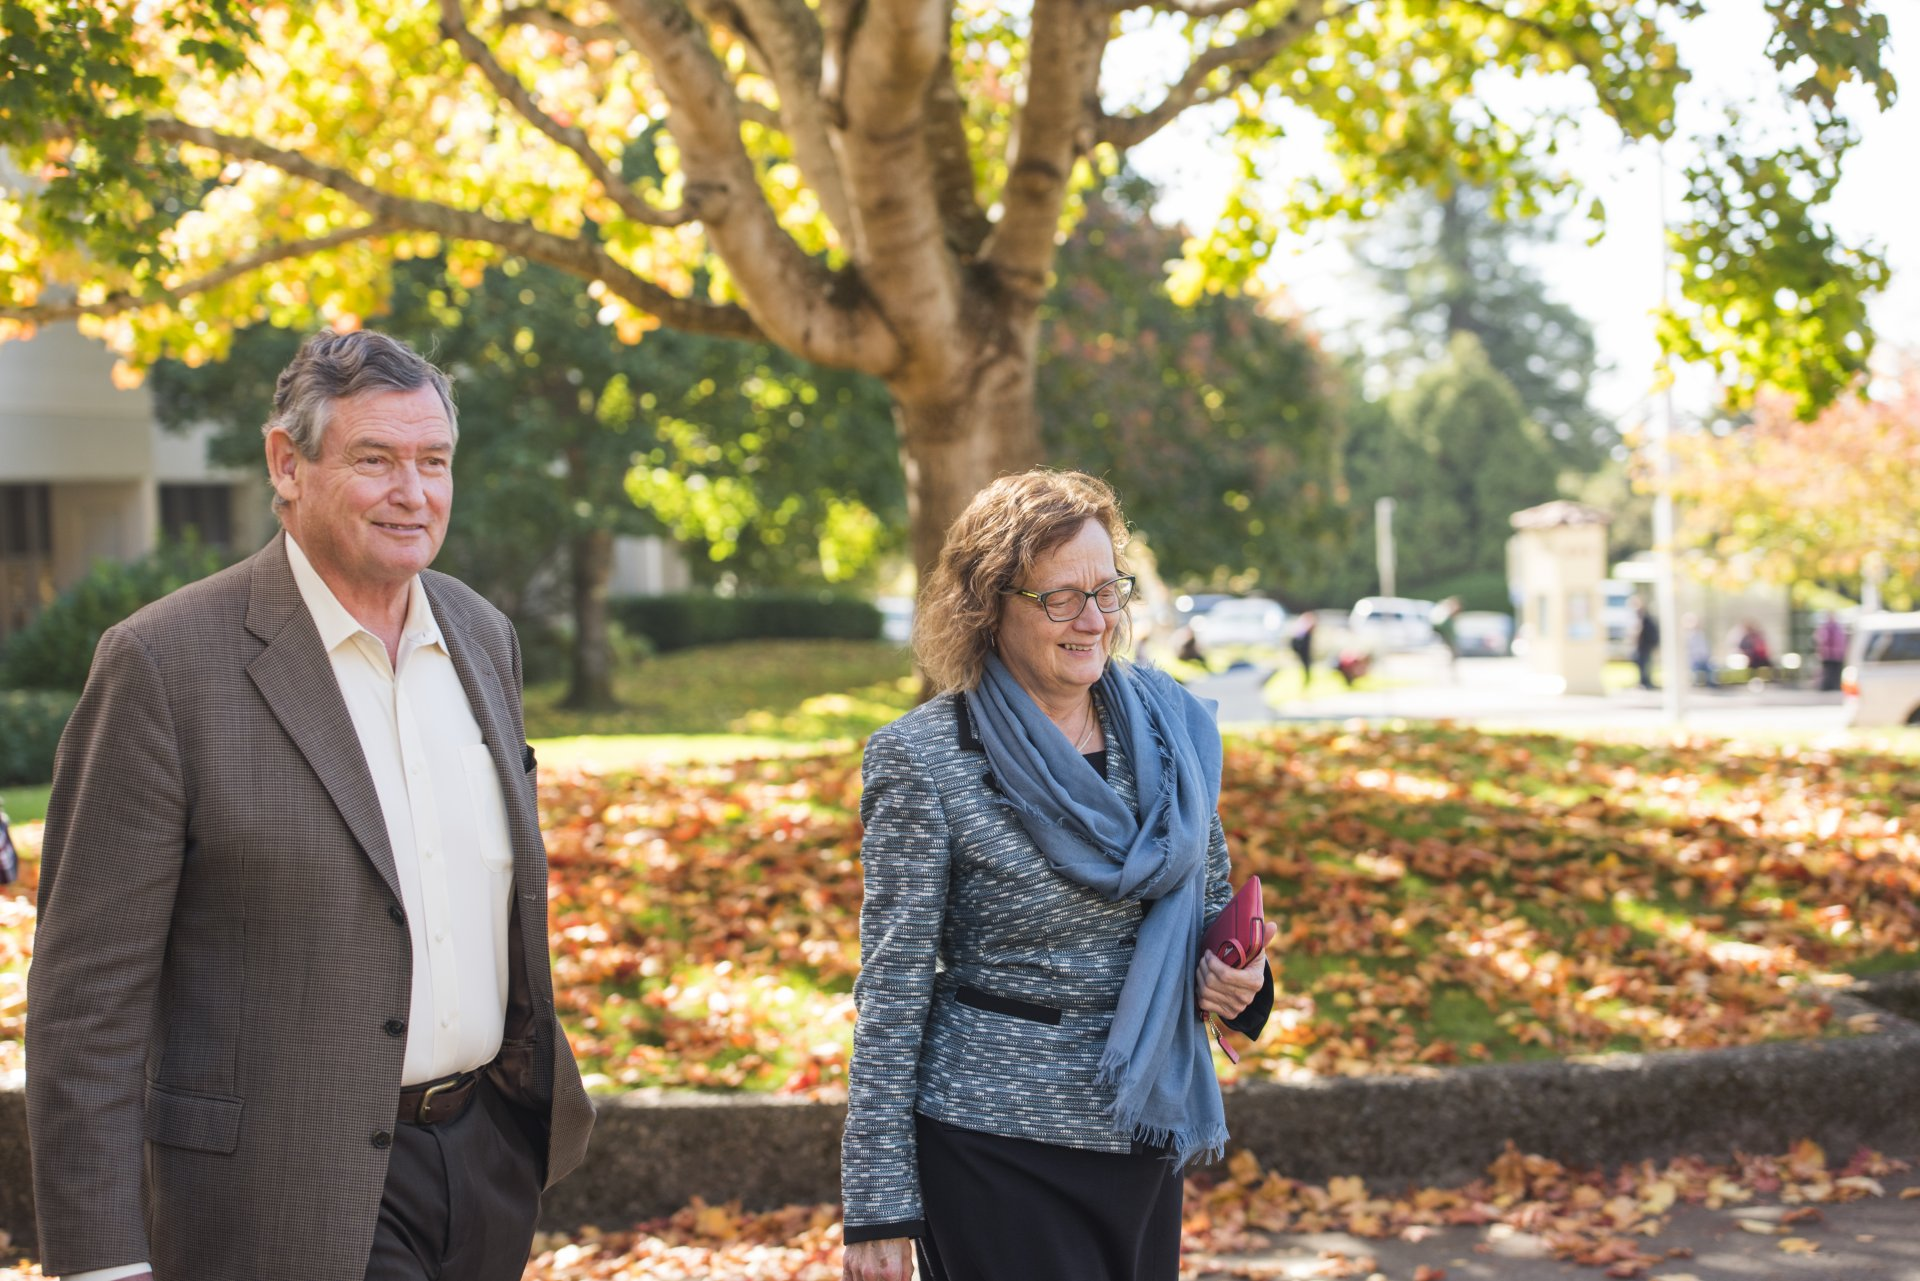 California State University Chancellor Timothy P. White on Humboldt State University's campus with current HSU President Lisa Rossbacher before their meeting on Oct. 9, 2018. | Photo courtesy of Humboldt State University